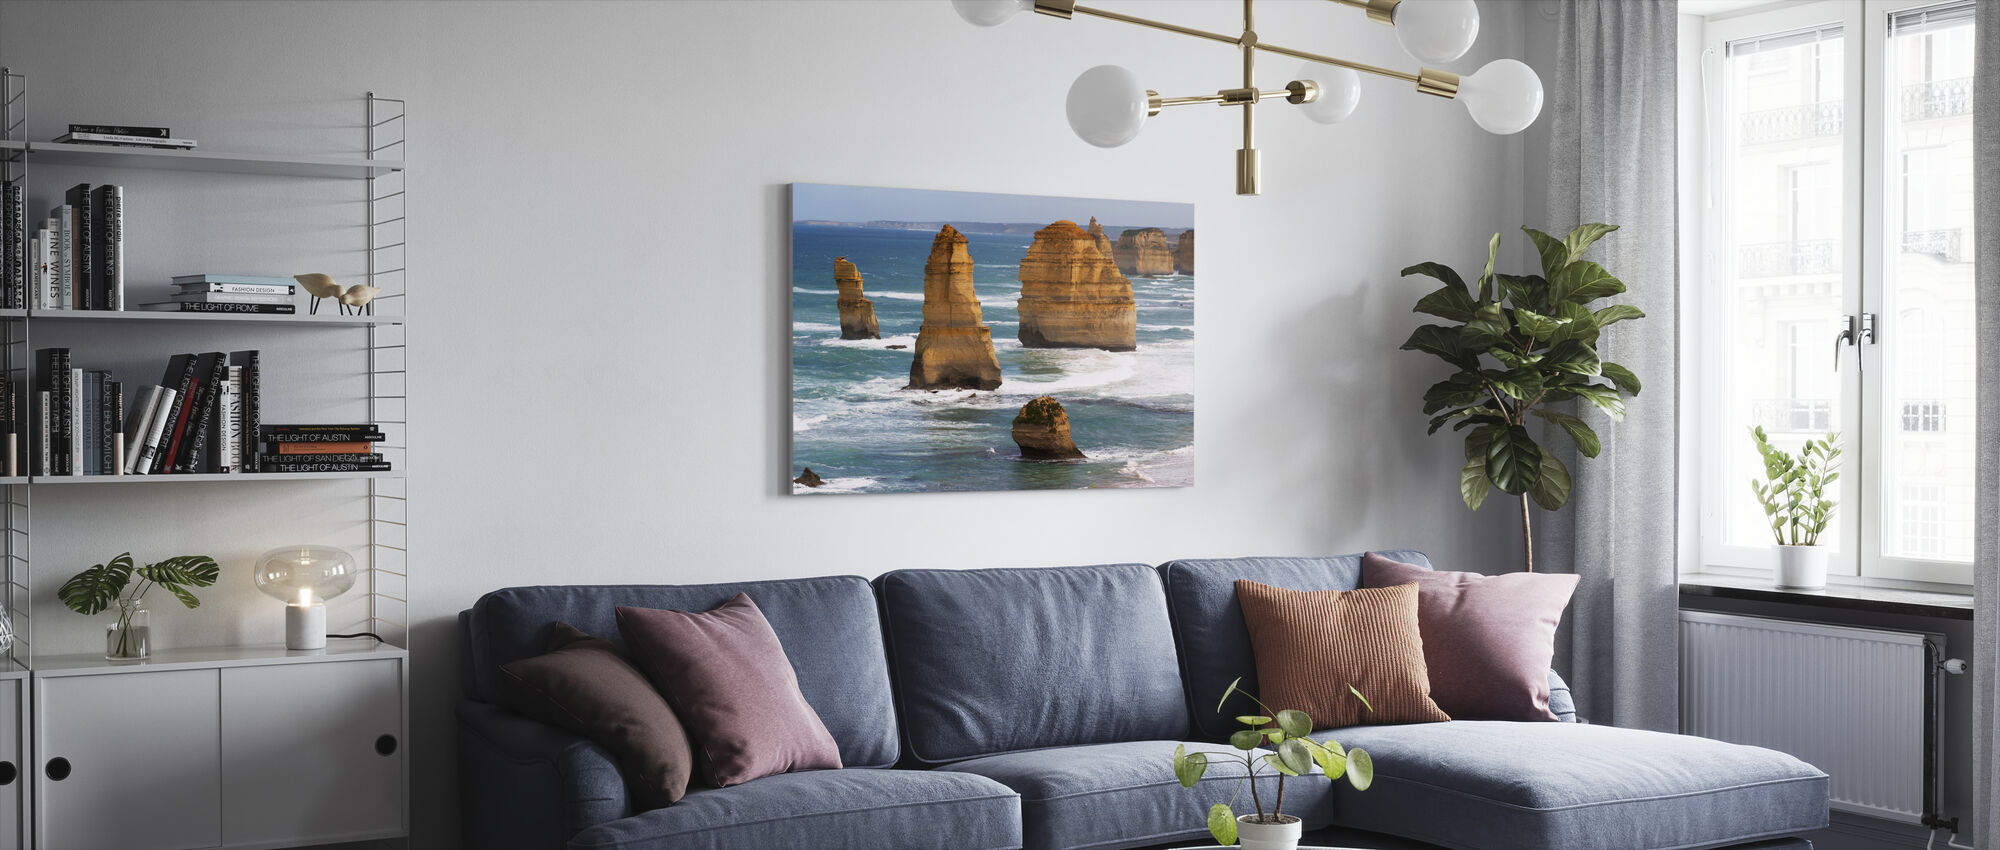 12 Apostels - Canvas print - Living Room